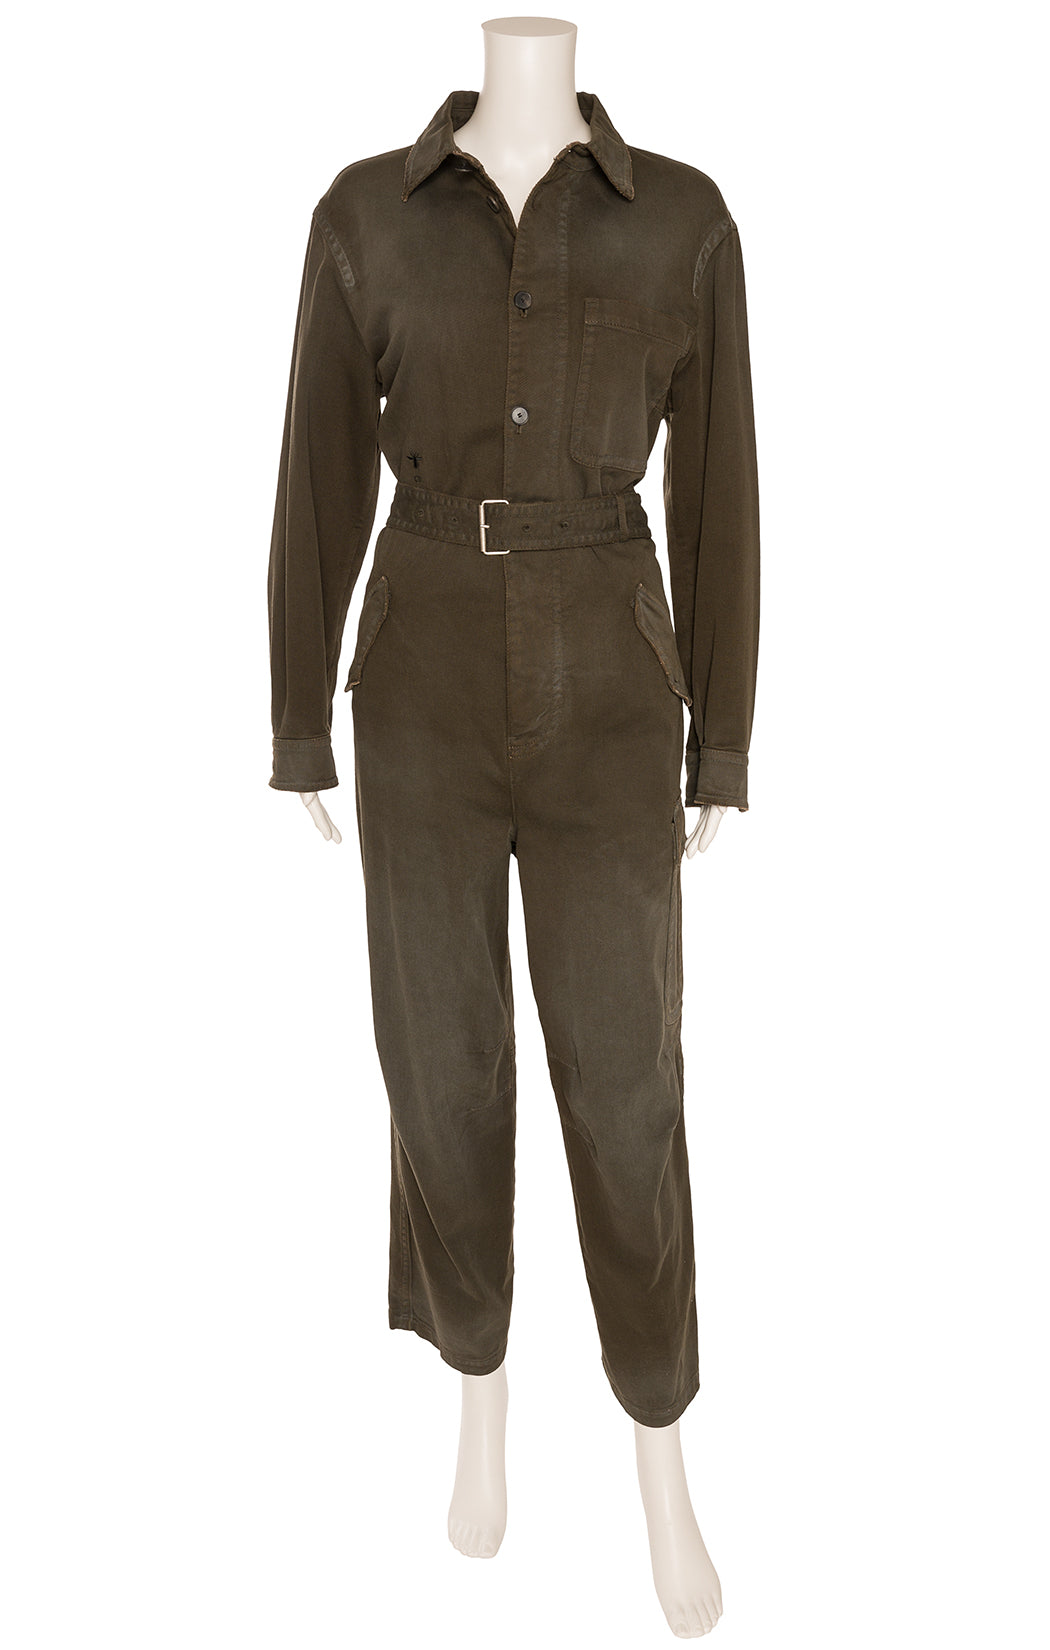 CHRISTIAN DIOR with tags  Jumpsuit  Size: FR 38 (comparable to US 4-6)